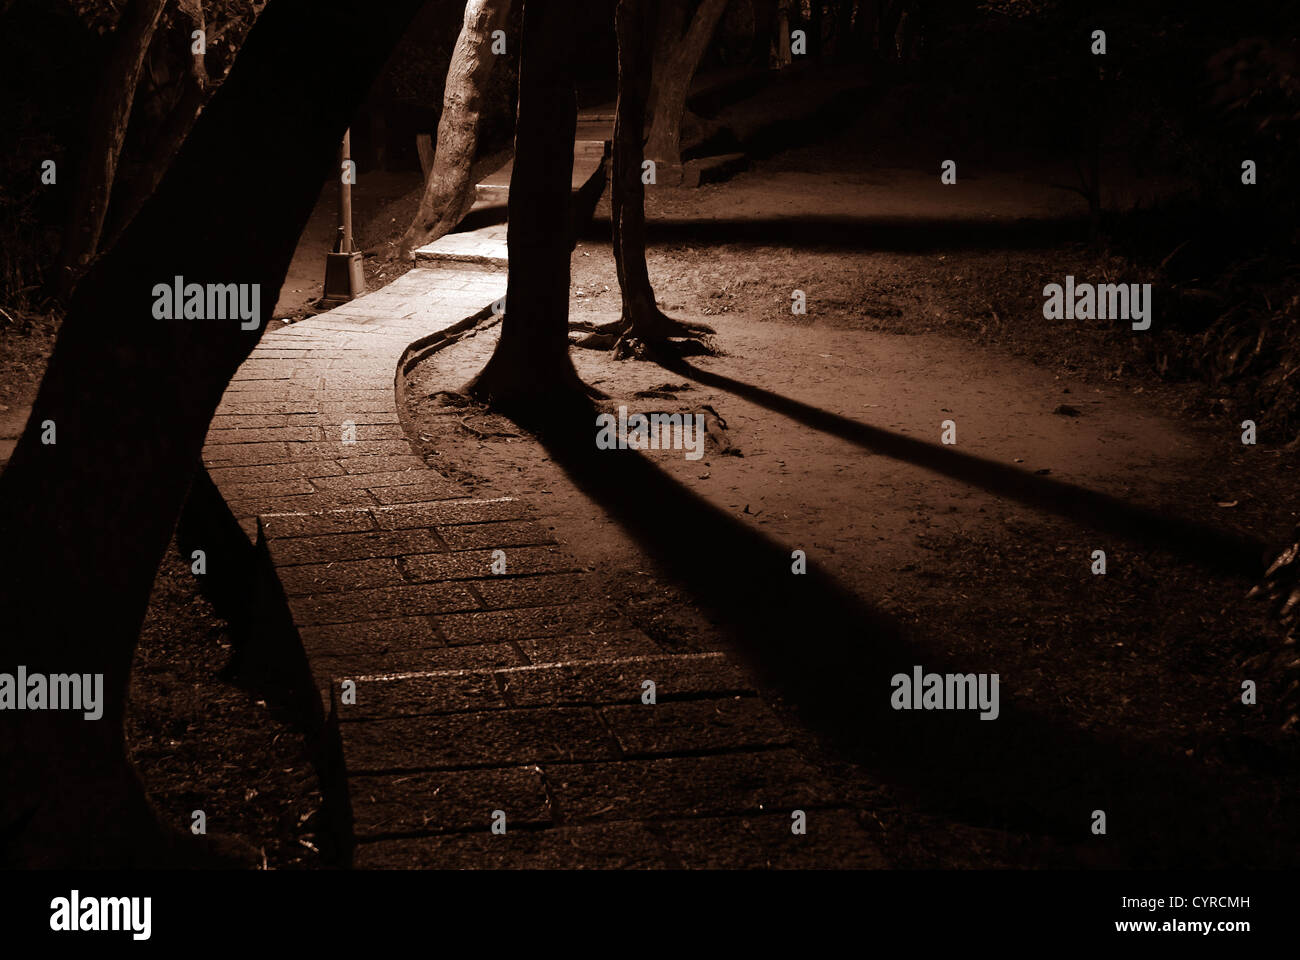 This is a road in a small park, very unsafe at night. - Stock Image